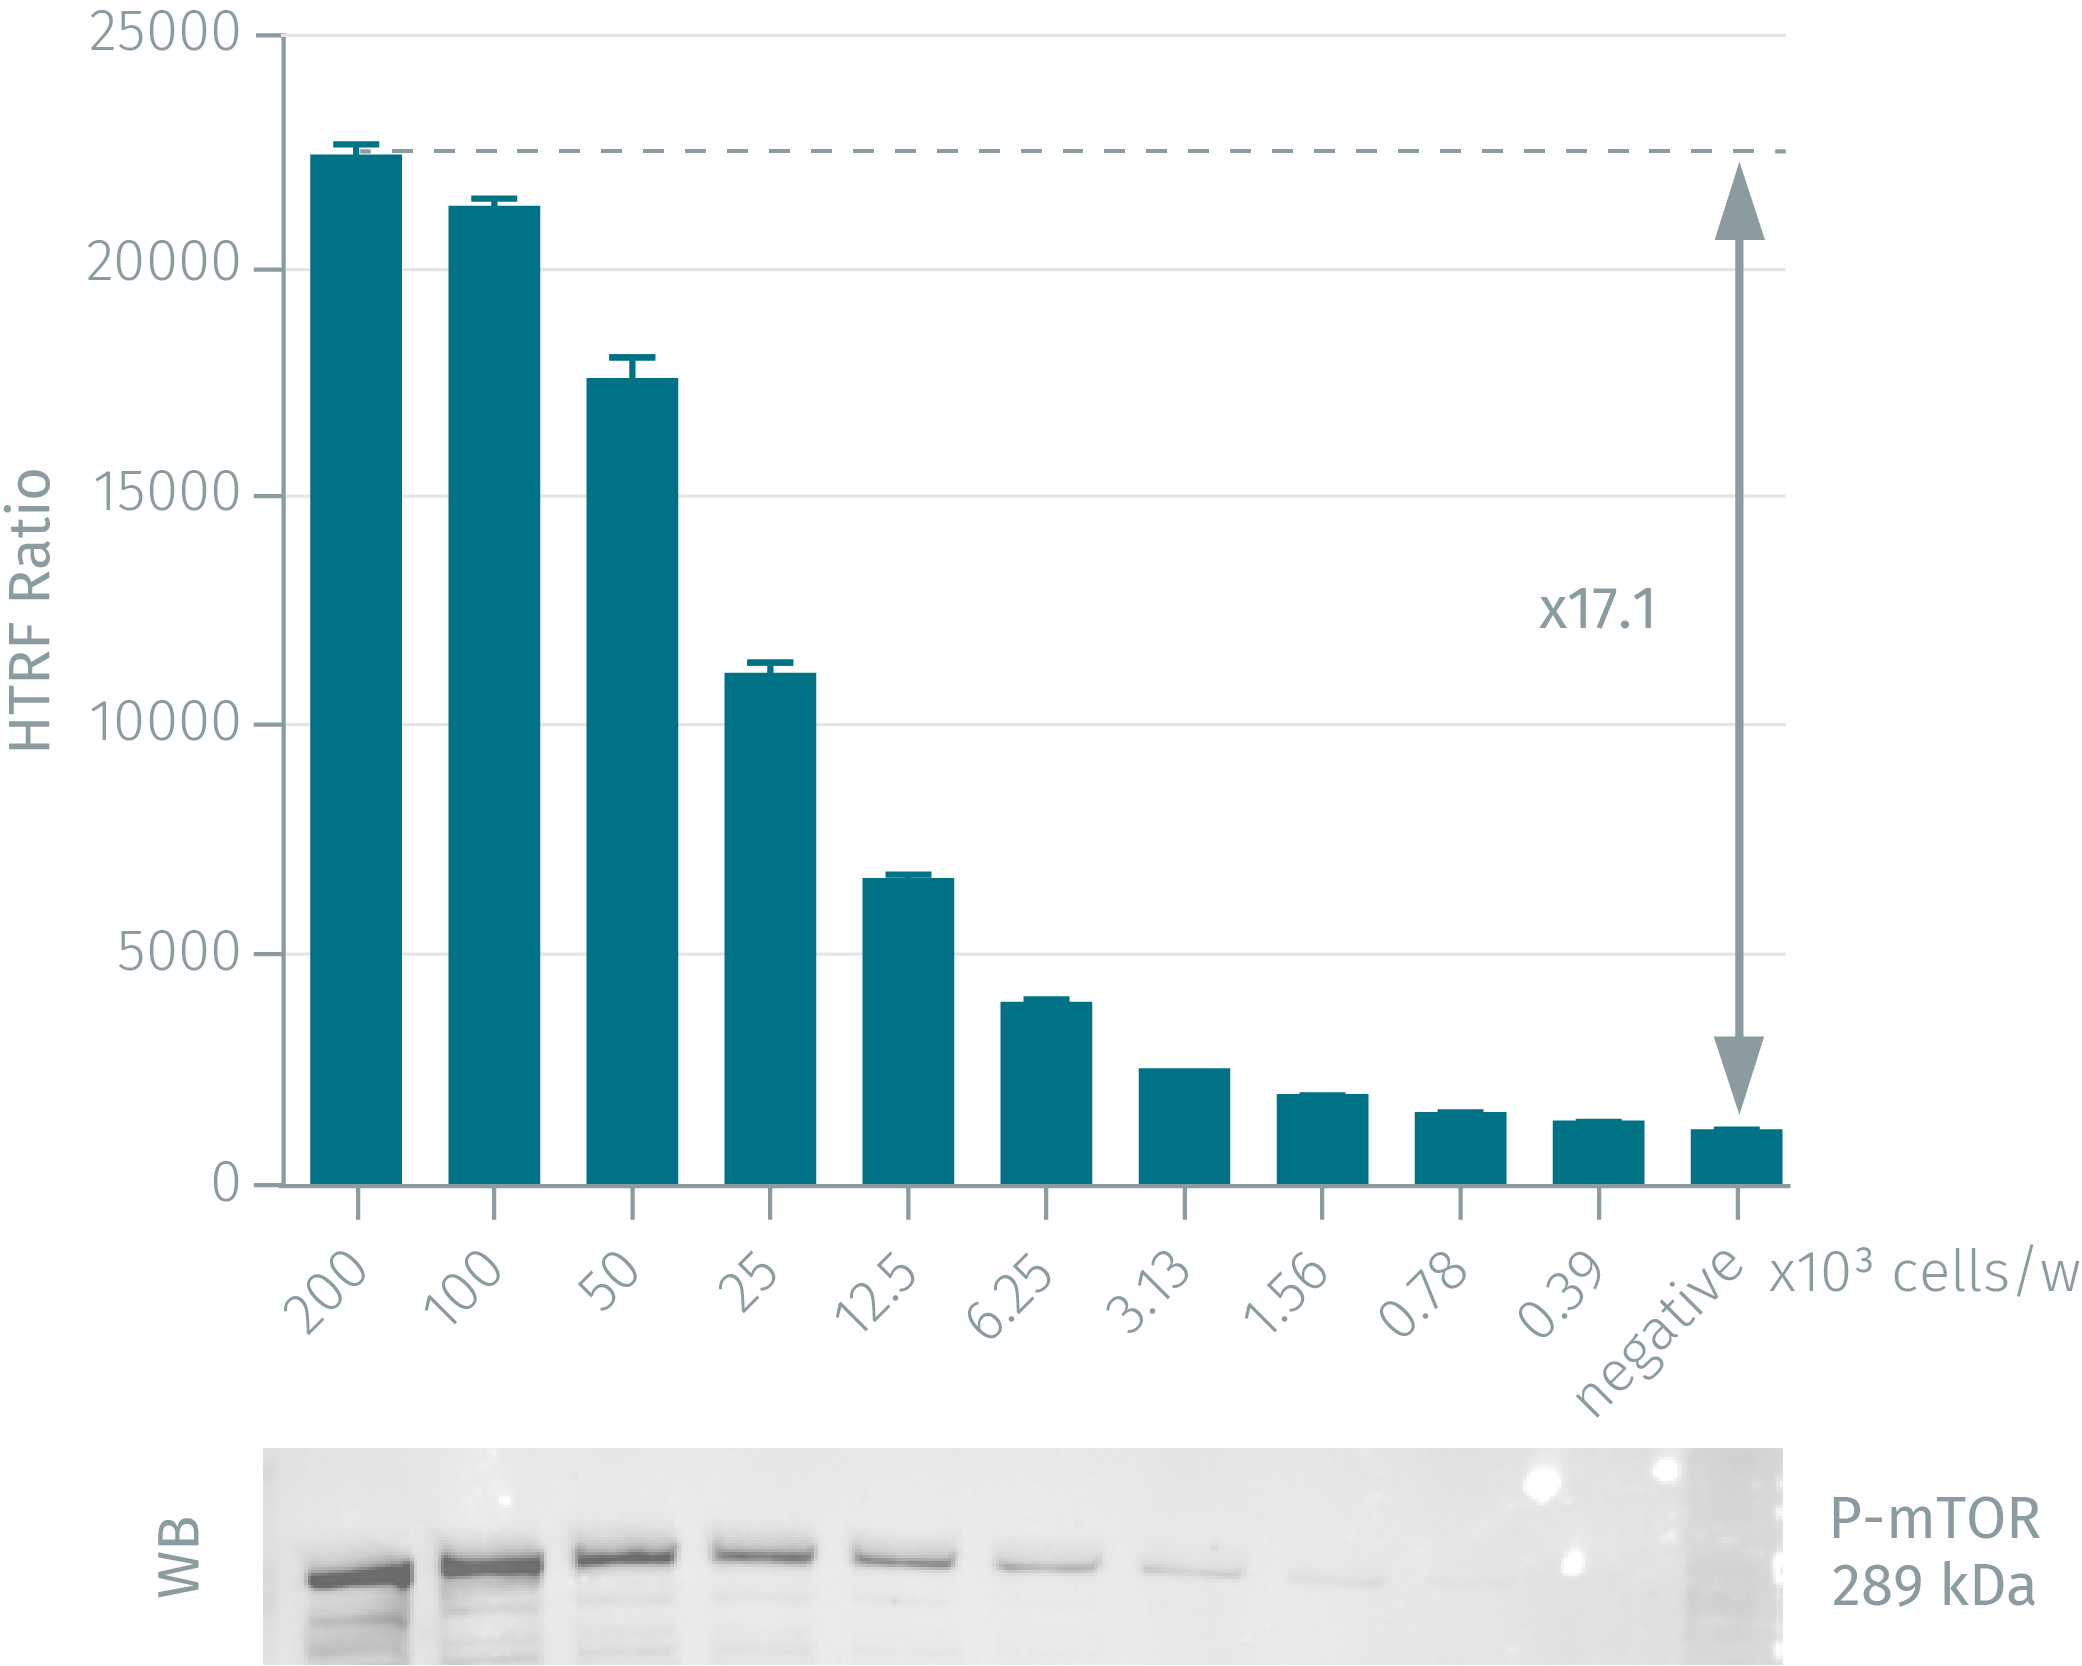 HTRF assay compared to Western Blot using phospho-mTOR cellular assay